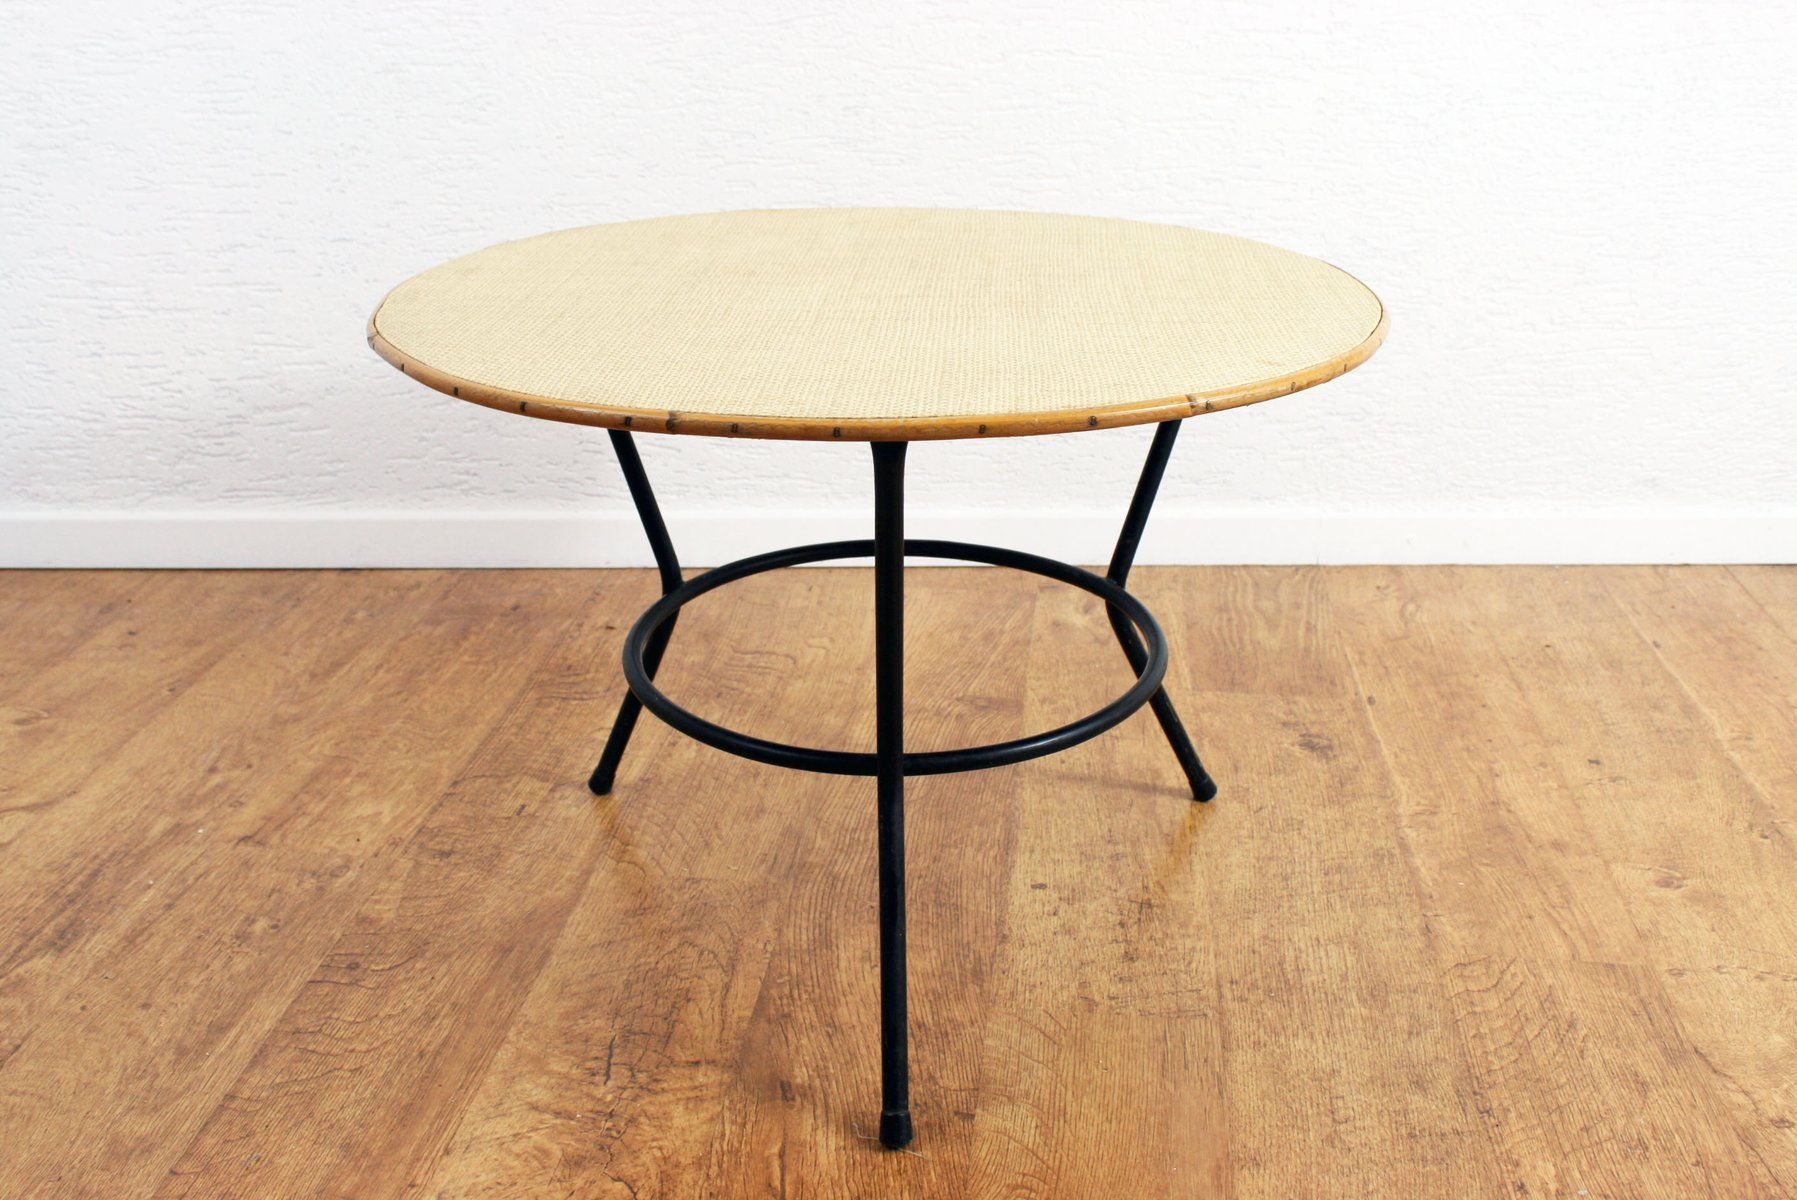 Table basse ronde vintage en rotin avec socle en m tal for Table basse en rotin